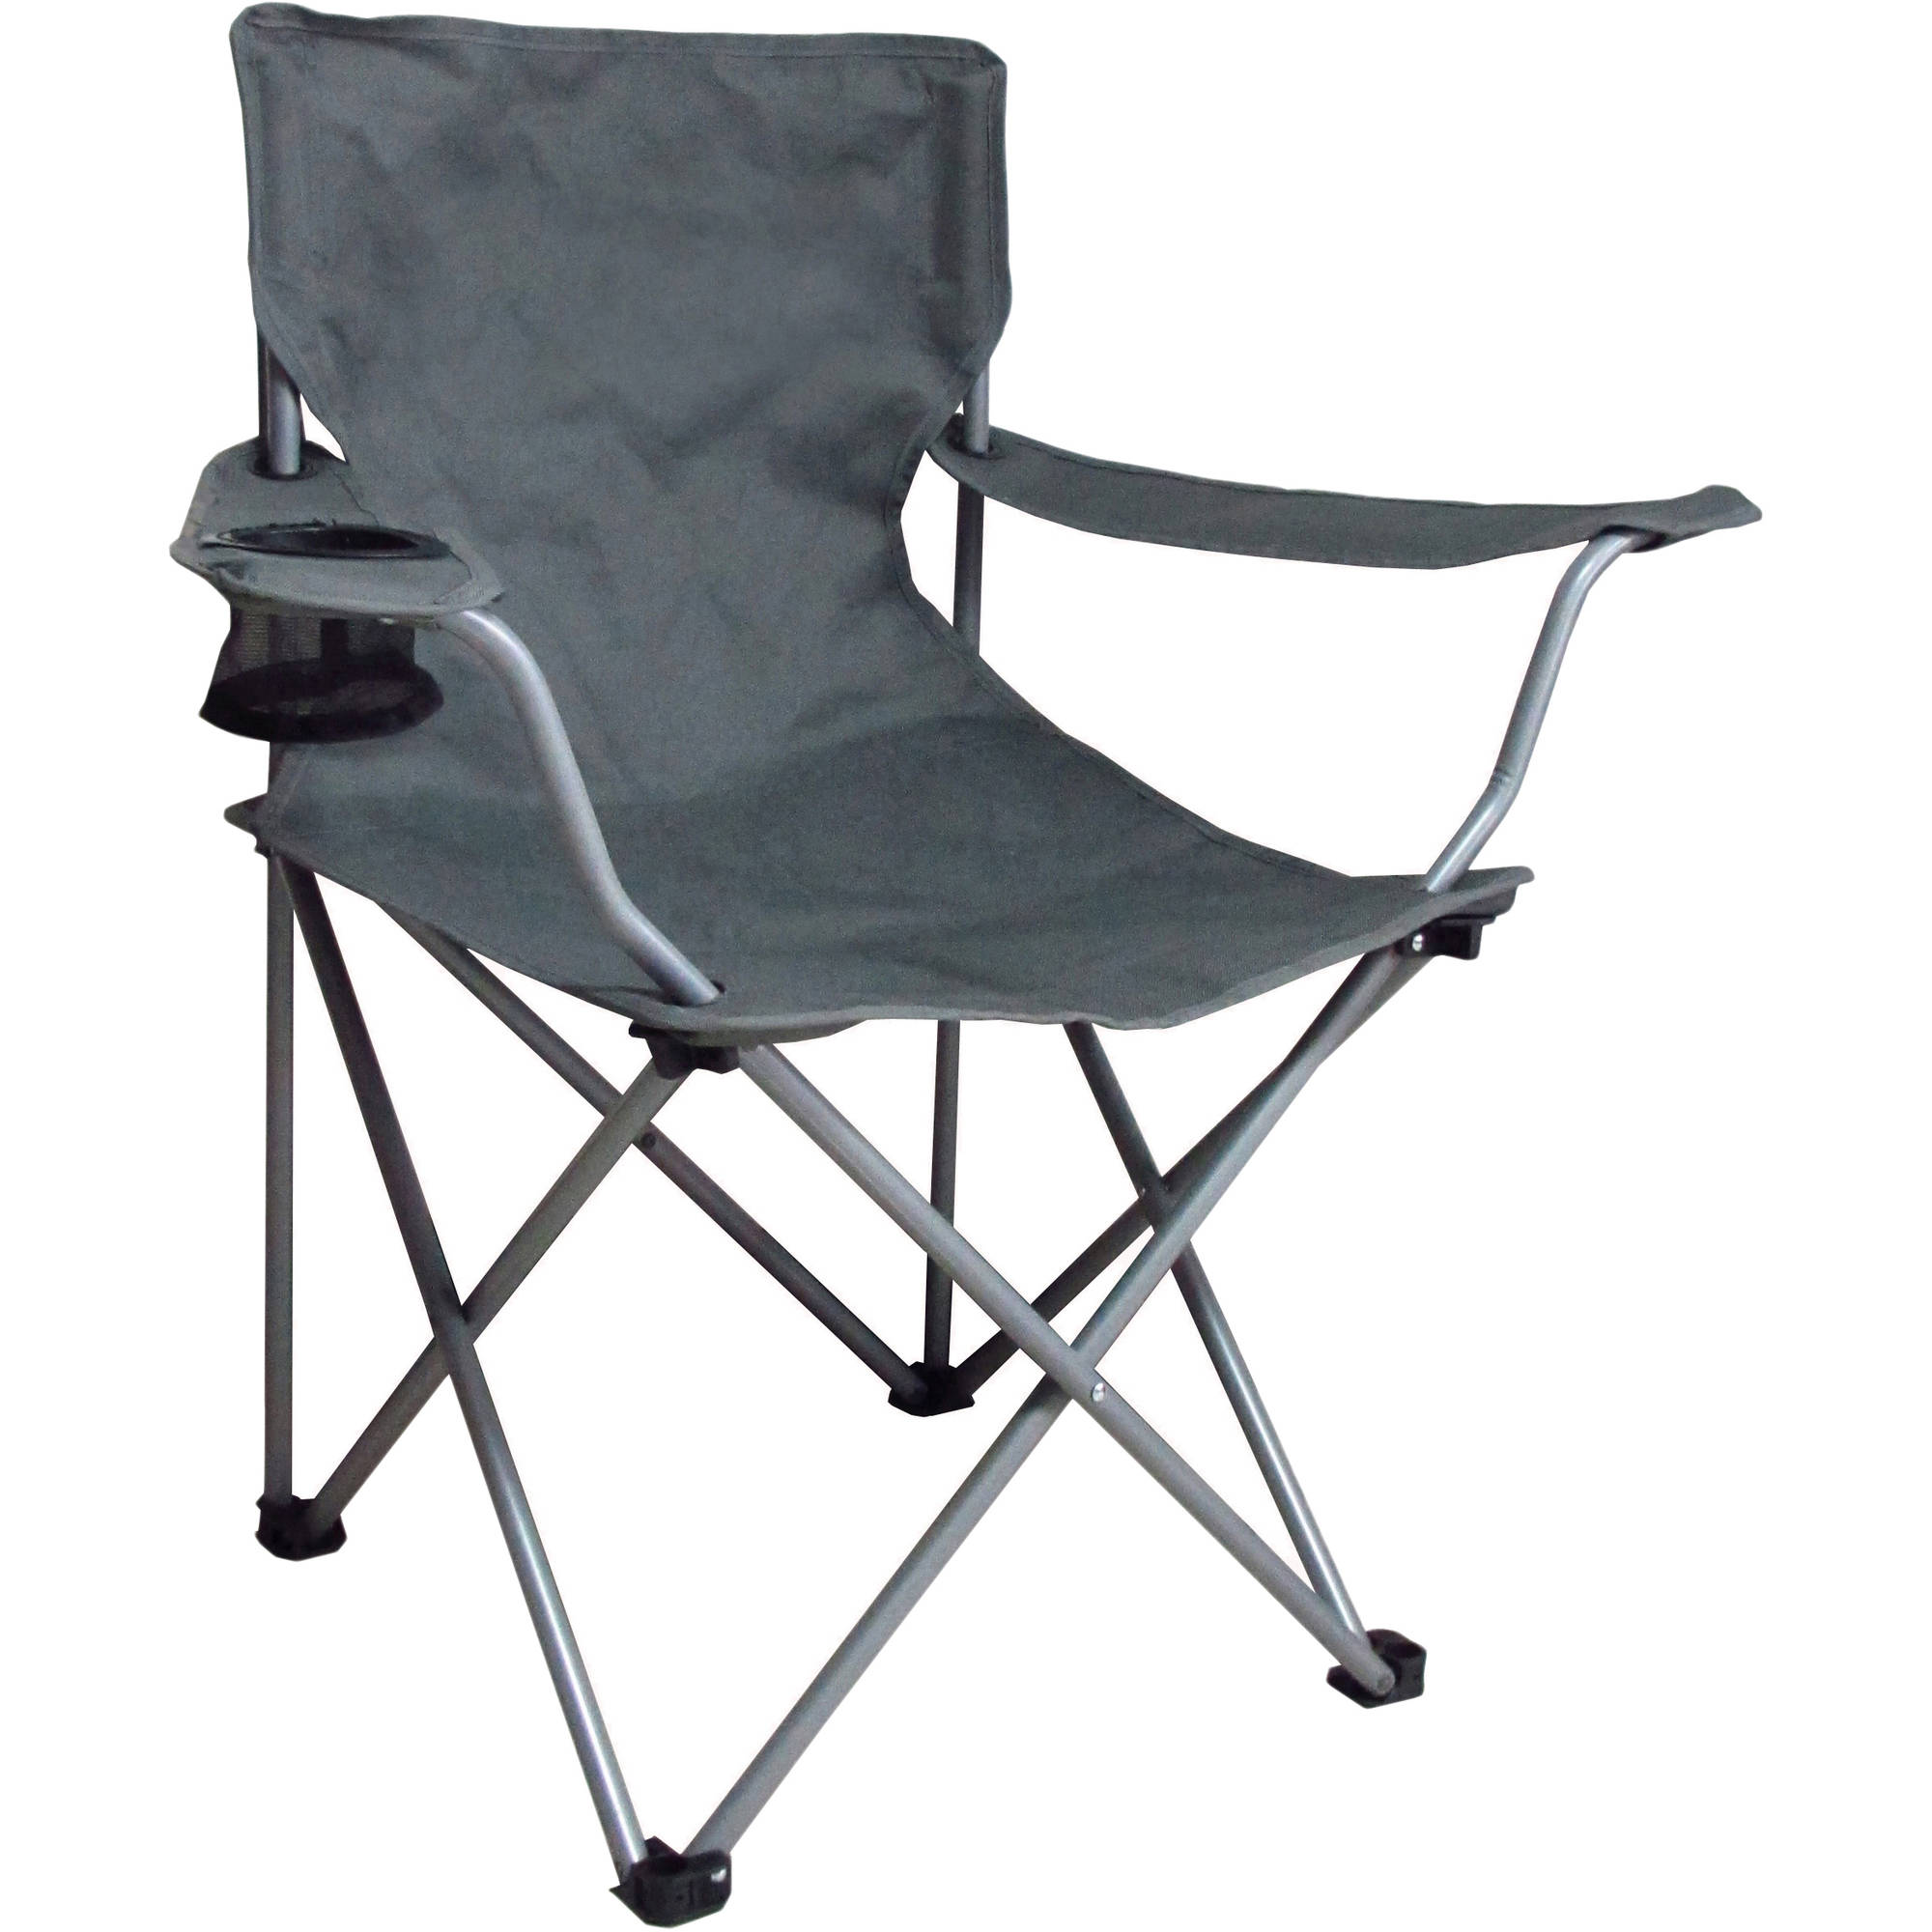 folding camping chairs ozark trail folding chair - walmart.com DAQEHYN